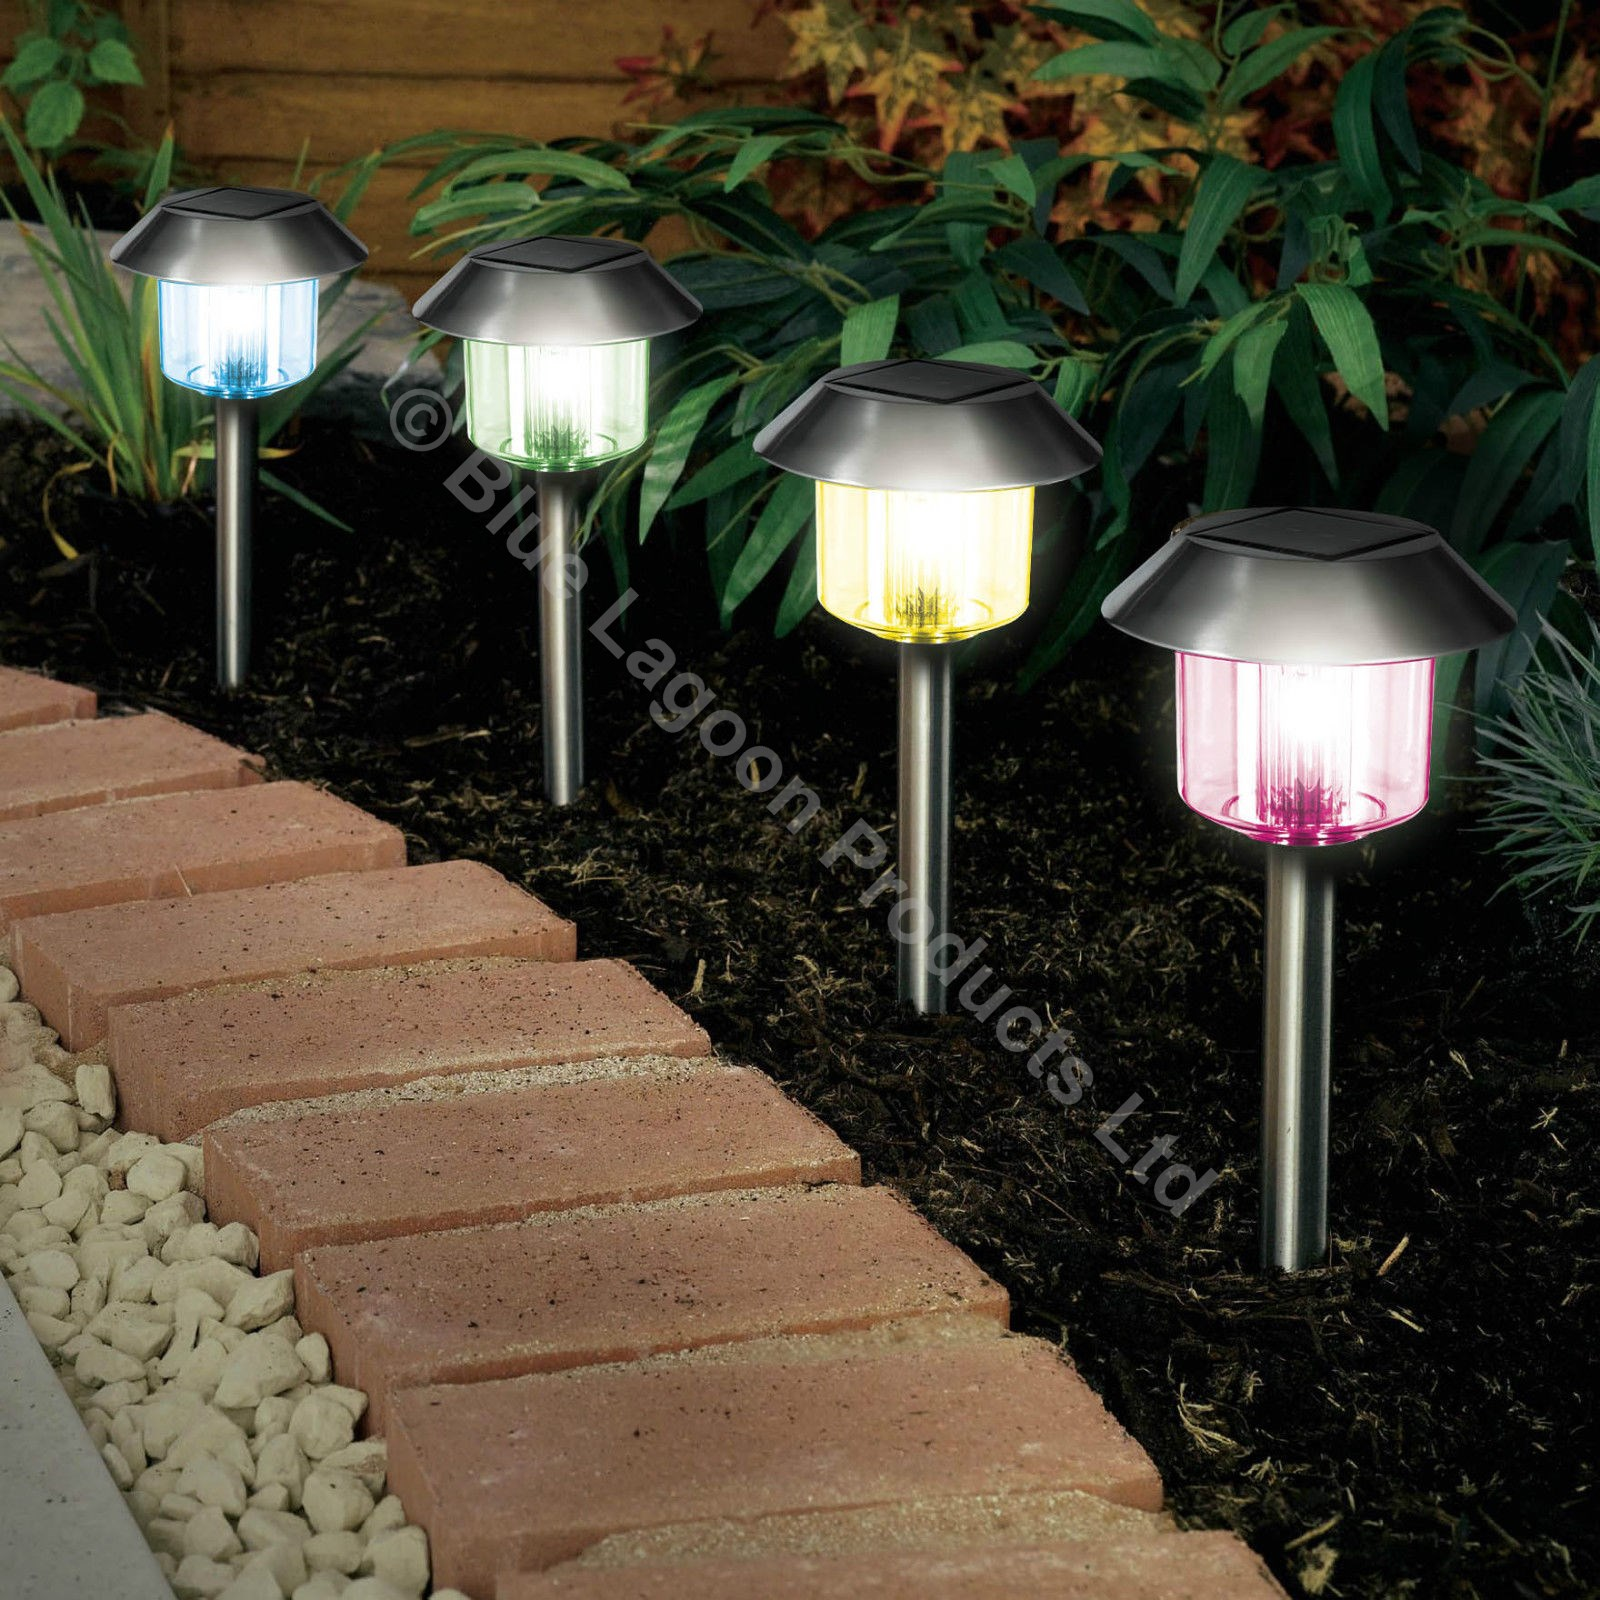 yiyang garden year lighting copper string lights new powered lamp waterproof decor from globe lawn led outdoor lantern patio in item street solar decorative m lamps